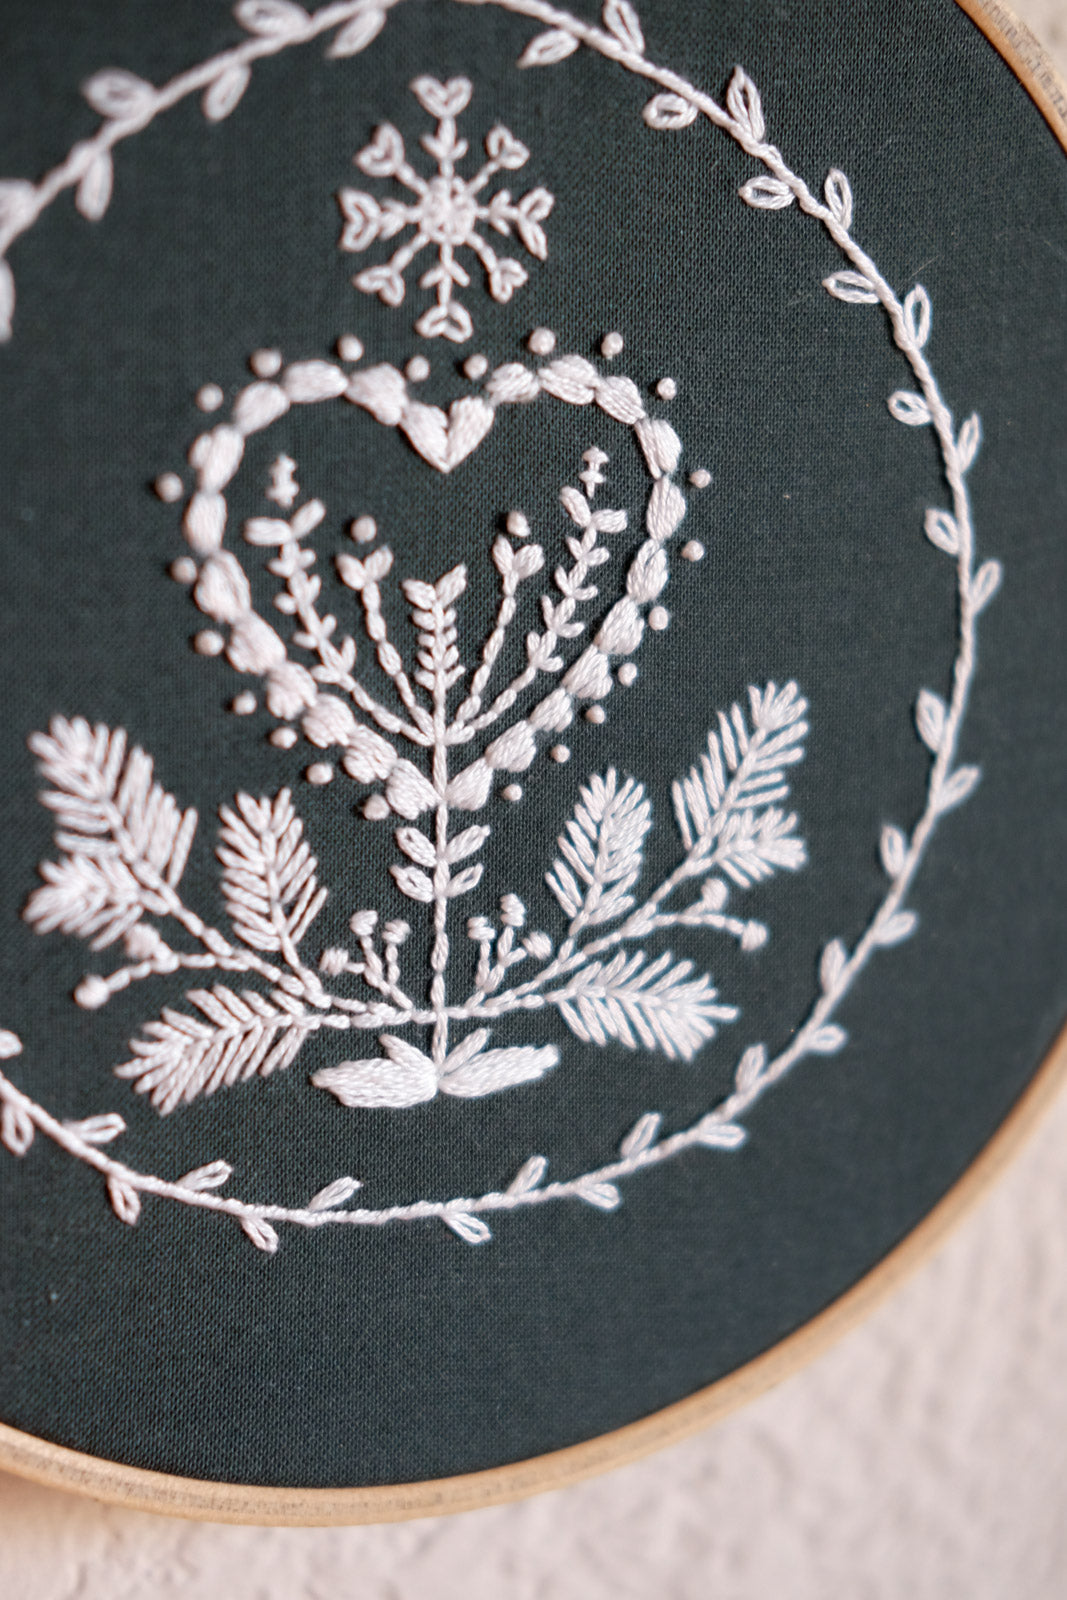 Detail of the Cozy Blue Holiday Heart Embroidery